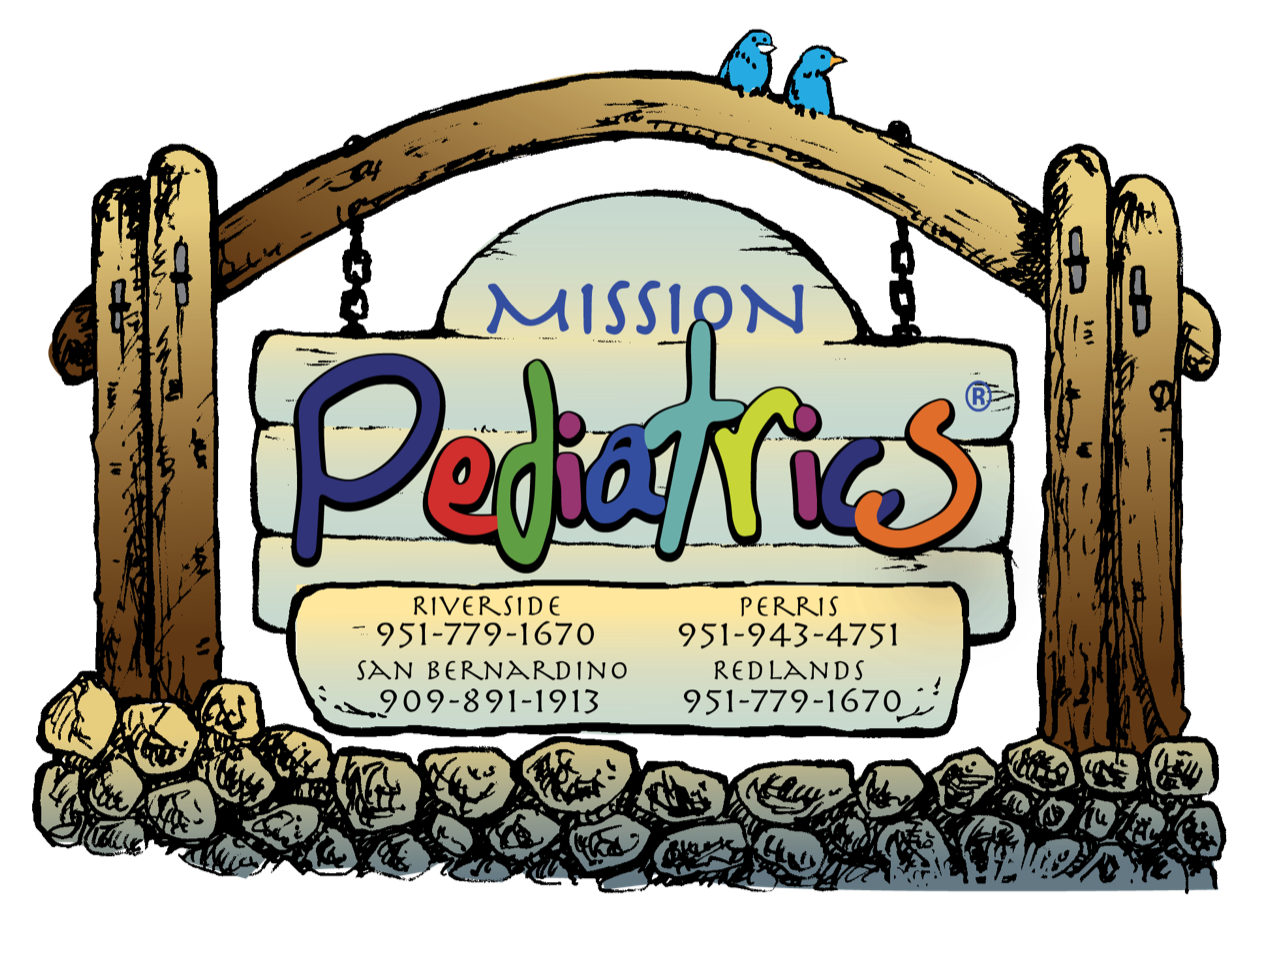 Missions clipart statement purpose. Mission pediatrics board certified